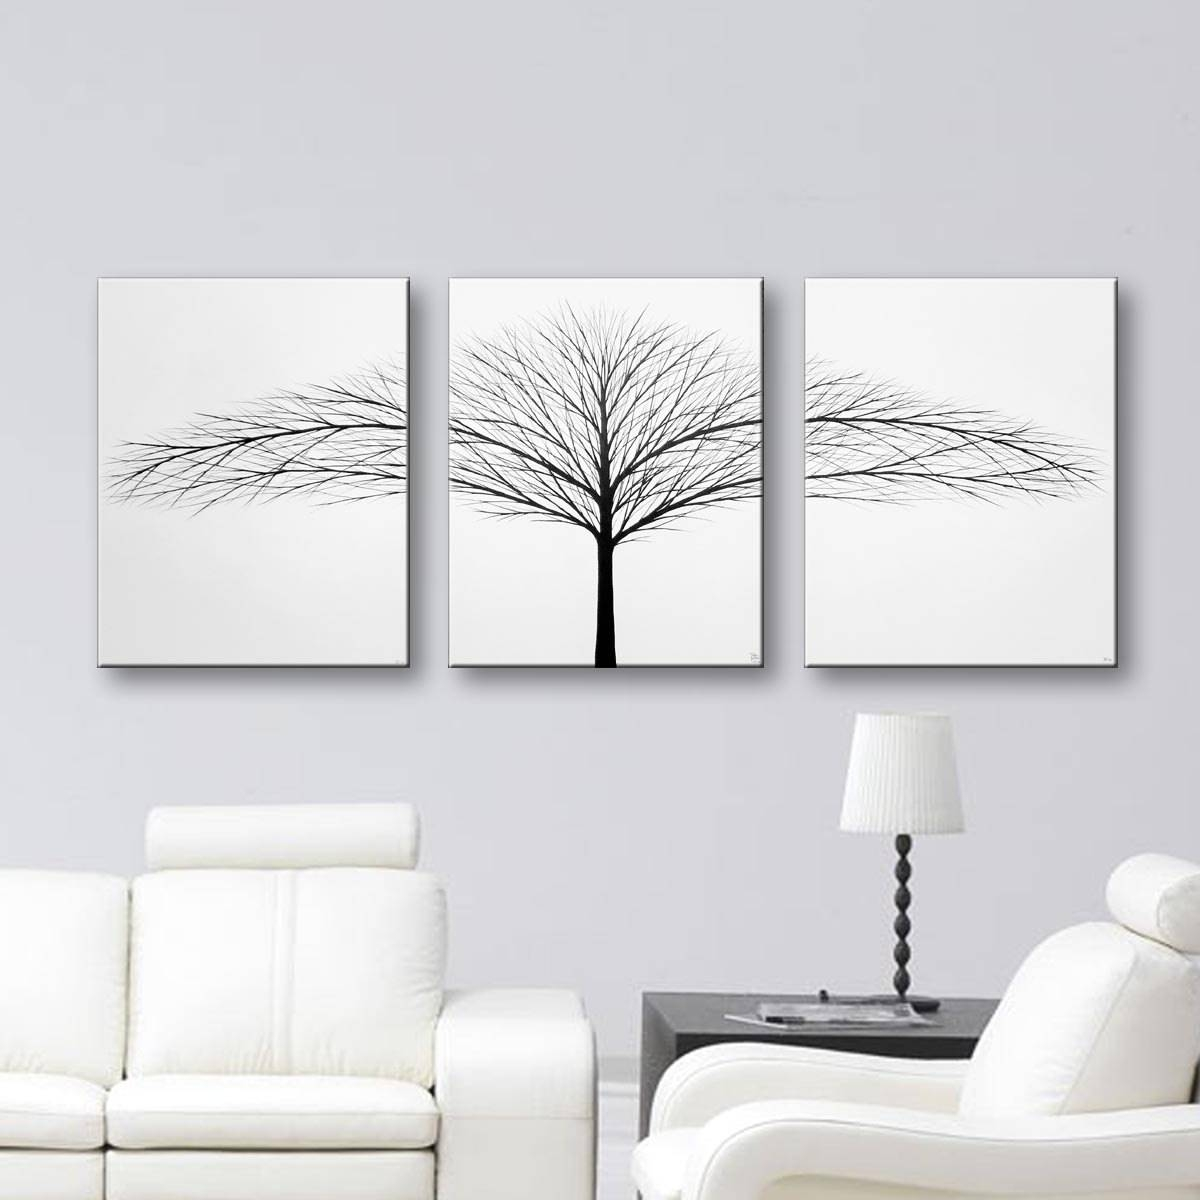 Bedroom Wall Decor 3 Piece Wall Art Canvas Art Minimalist Within 2017 Painted Trees Wall Art (View 2 of 20)